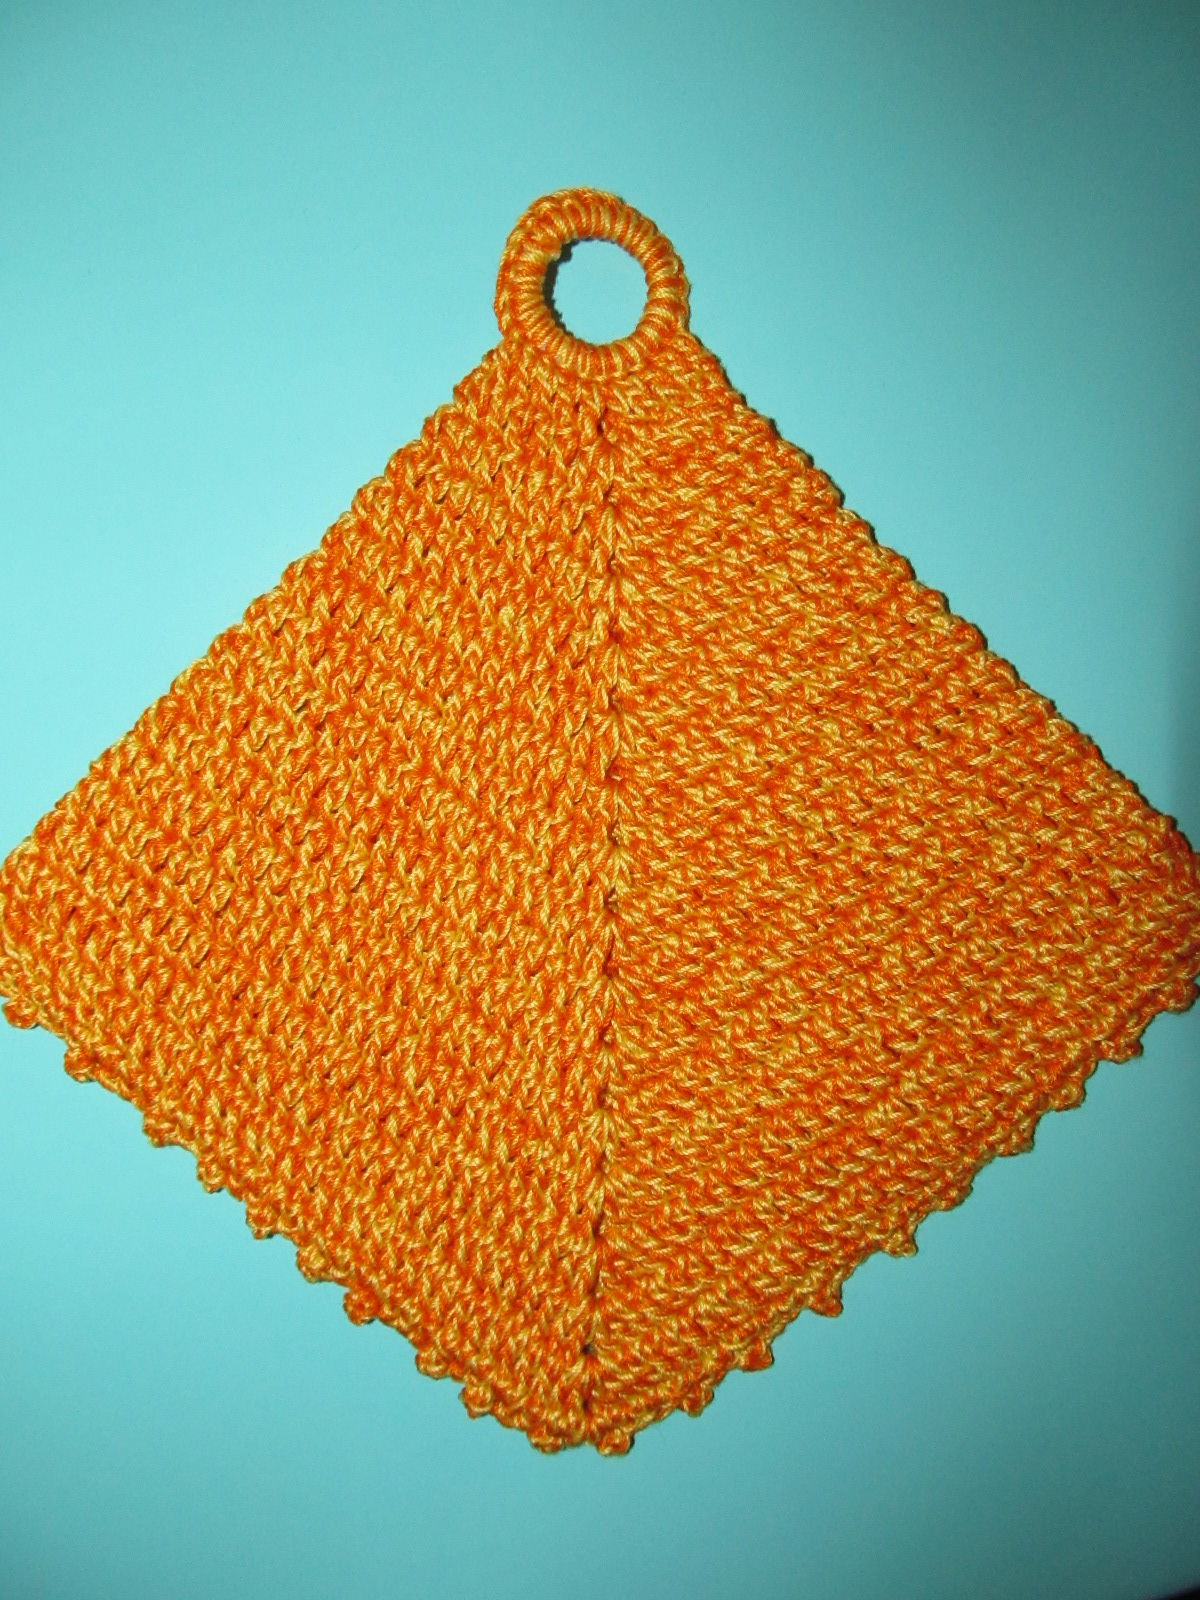 Simply Crochet and Other Crafts: Double-Sided Diagonal Pot Holder